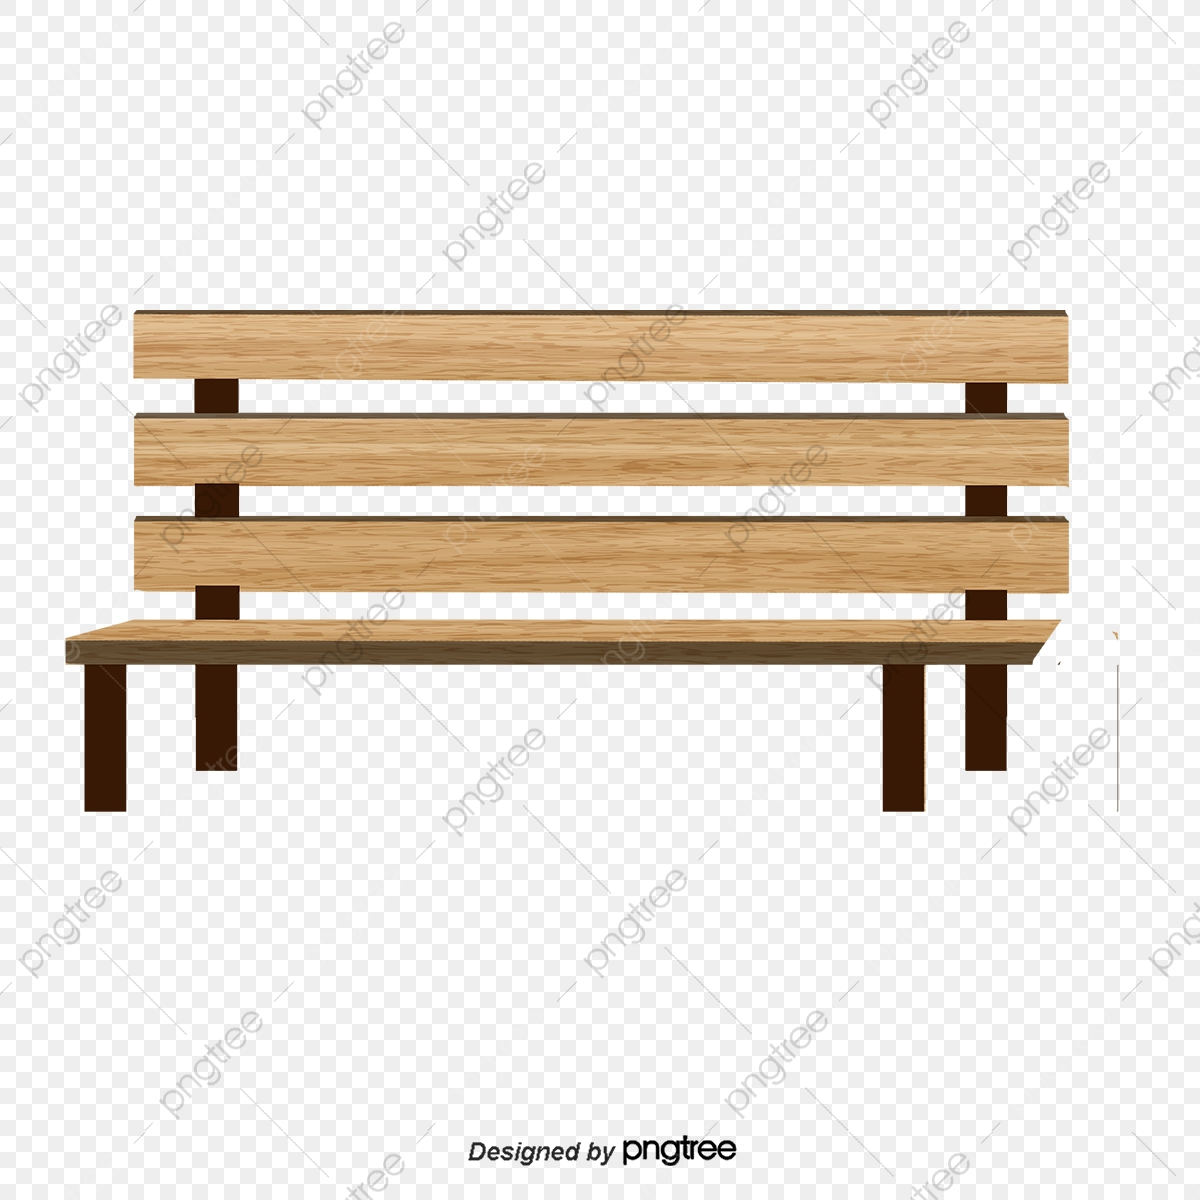 Vector Park Chair Chair Vector Wooden Chairs Long Chair Png Transparent Clipart Image And Psd File For Free Download